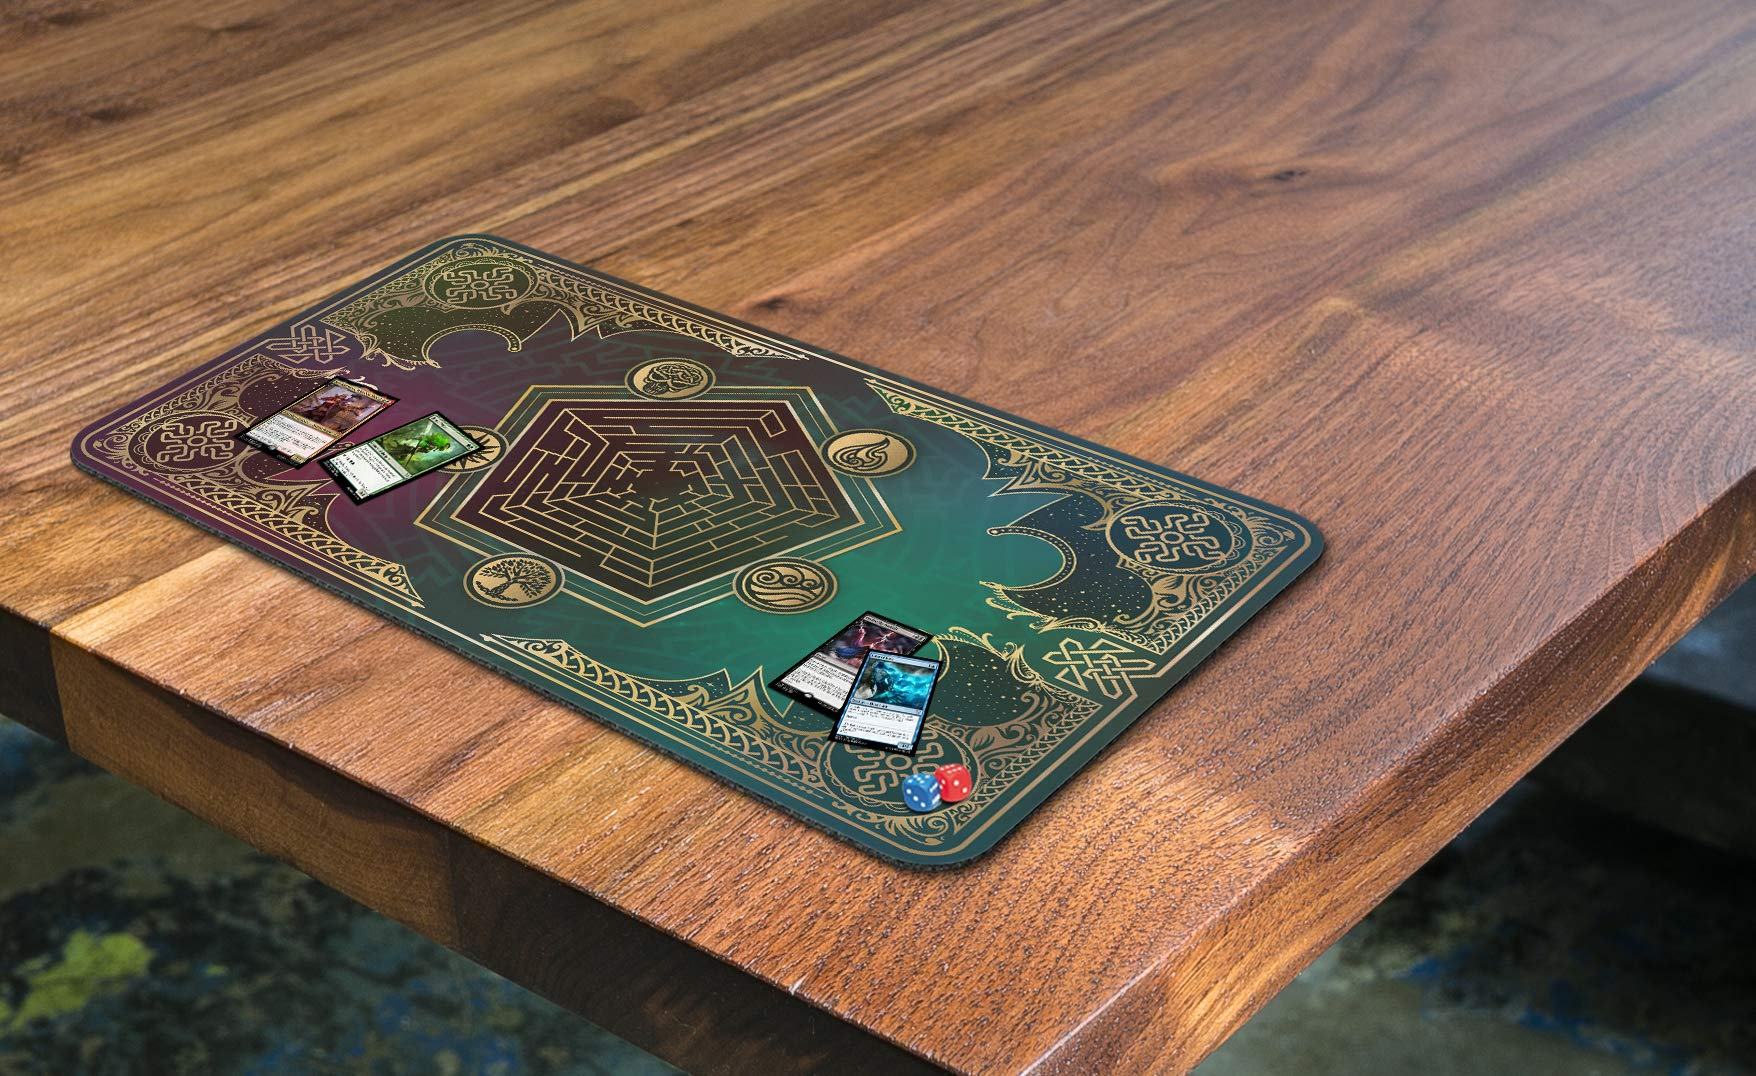 Paramint Mana Blast | MTG Playmat | Perfect for Magic The Gathering, Pokemon, YuGiOh, Anime | TCG Card Game Table Mat | Durable, Thick, Cloth Fabric Top with Rubber Bottom by Daniel Ziegler by Paramint (Image #4)